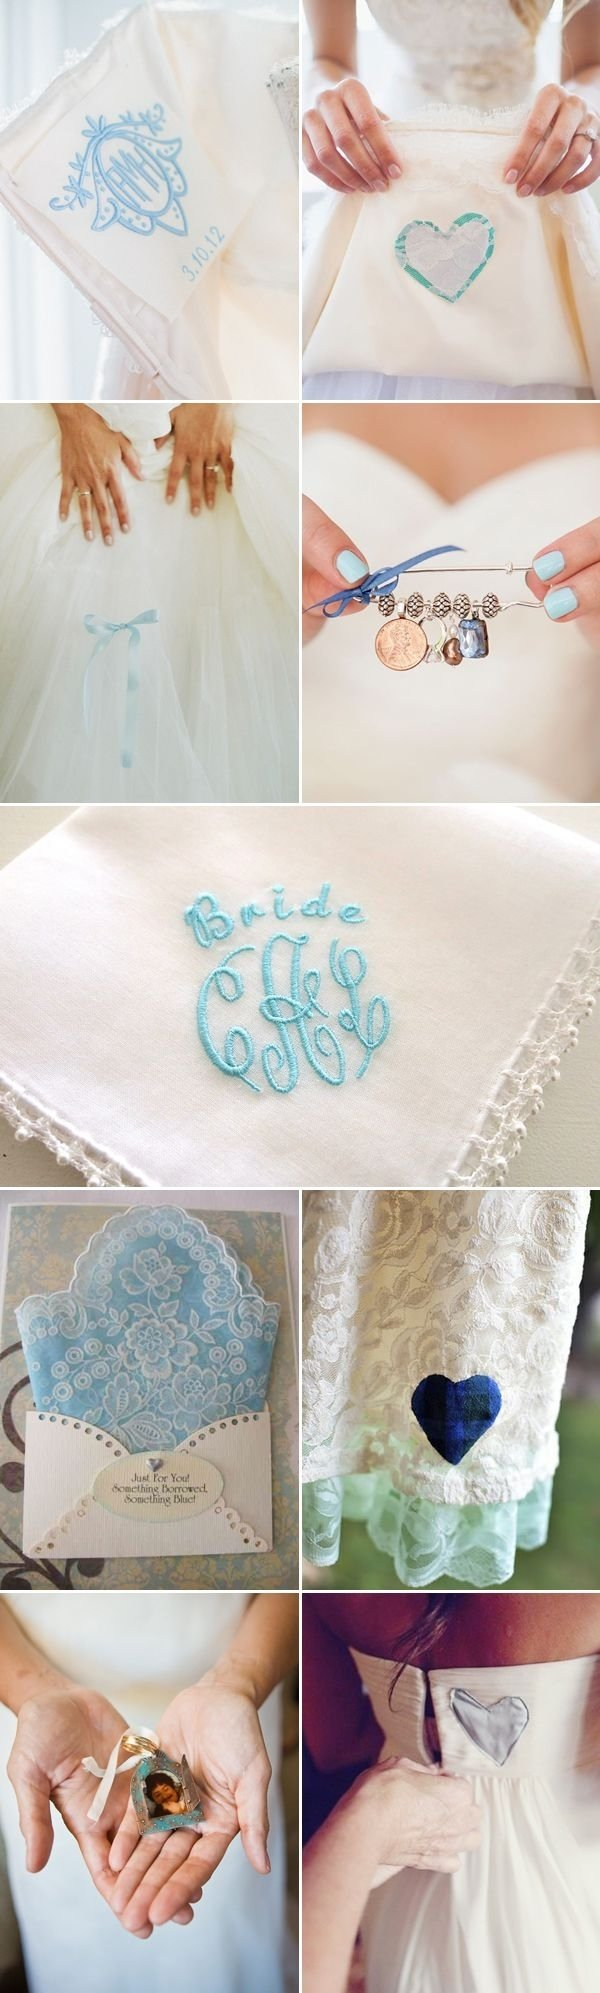 make your own something old, new, borrowed, blue dress pin